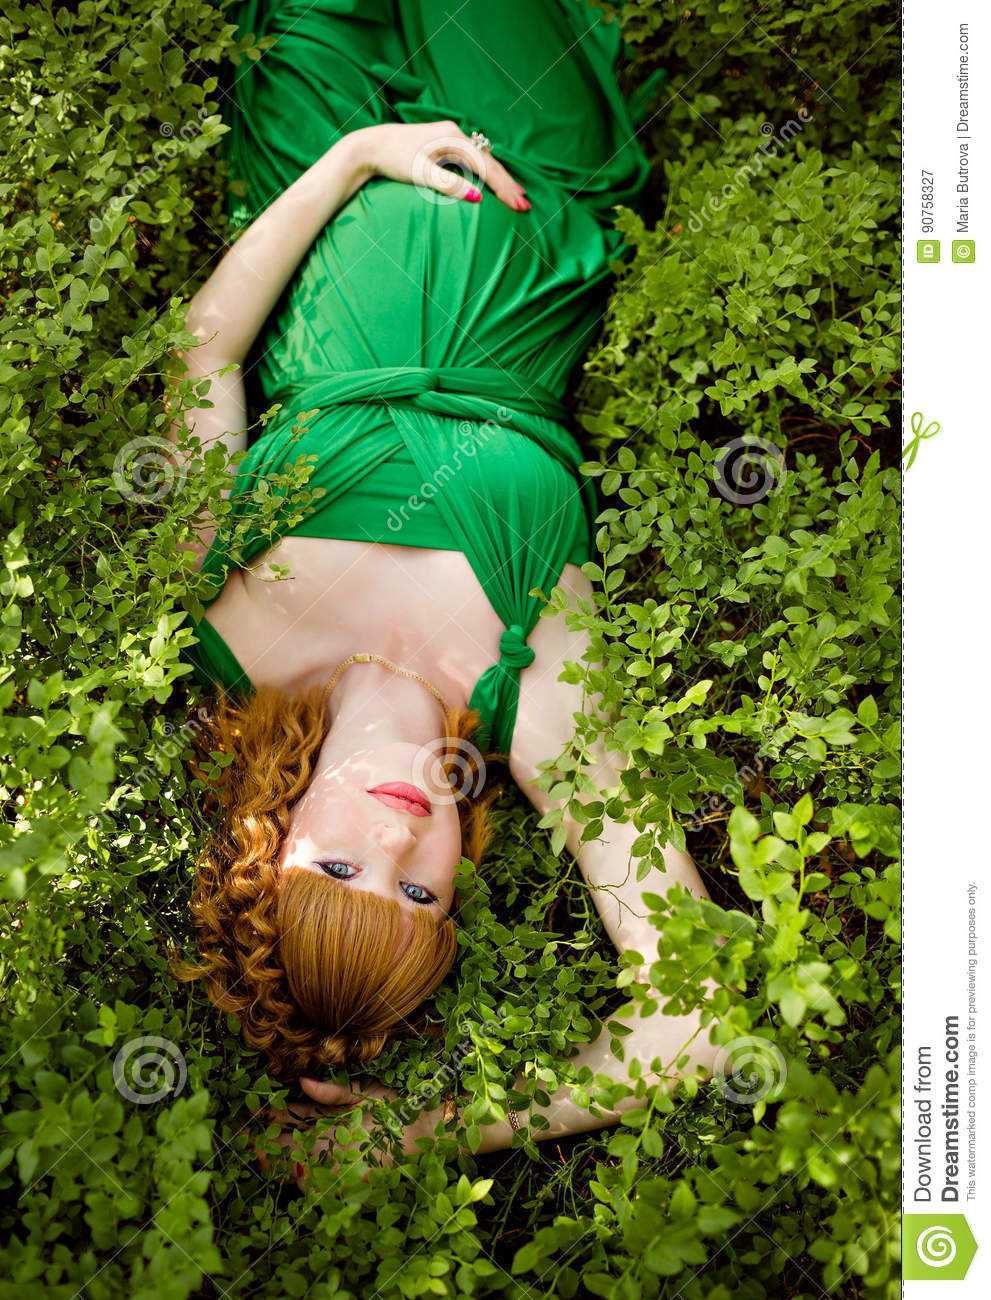 portrait of a beautiful red-haired pregnant girl in a green dress, lying in the grass